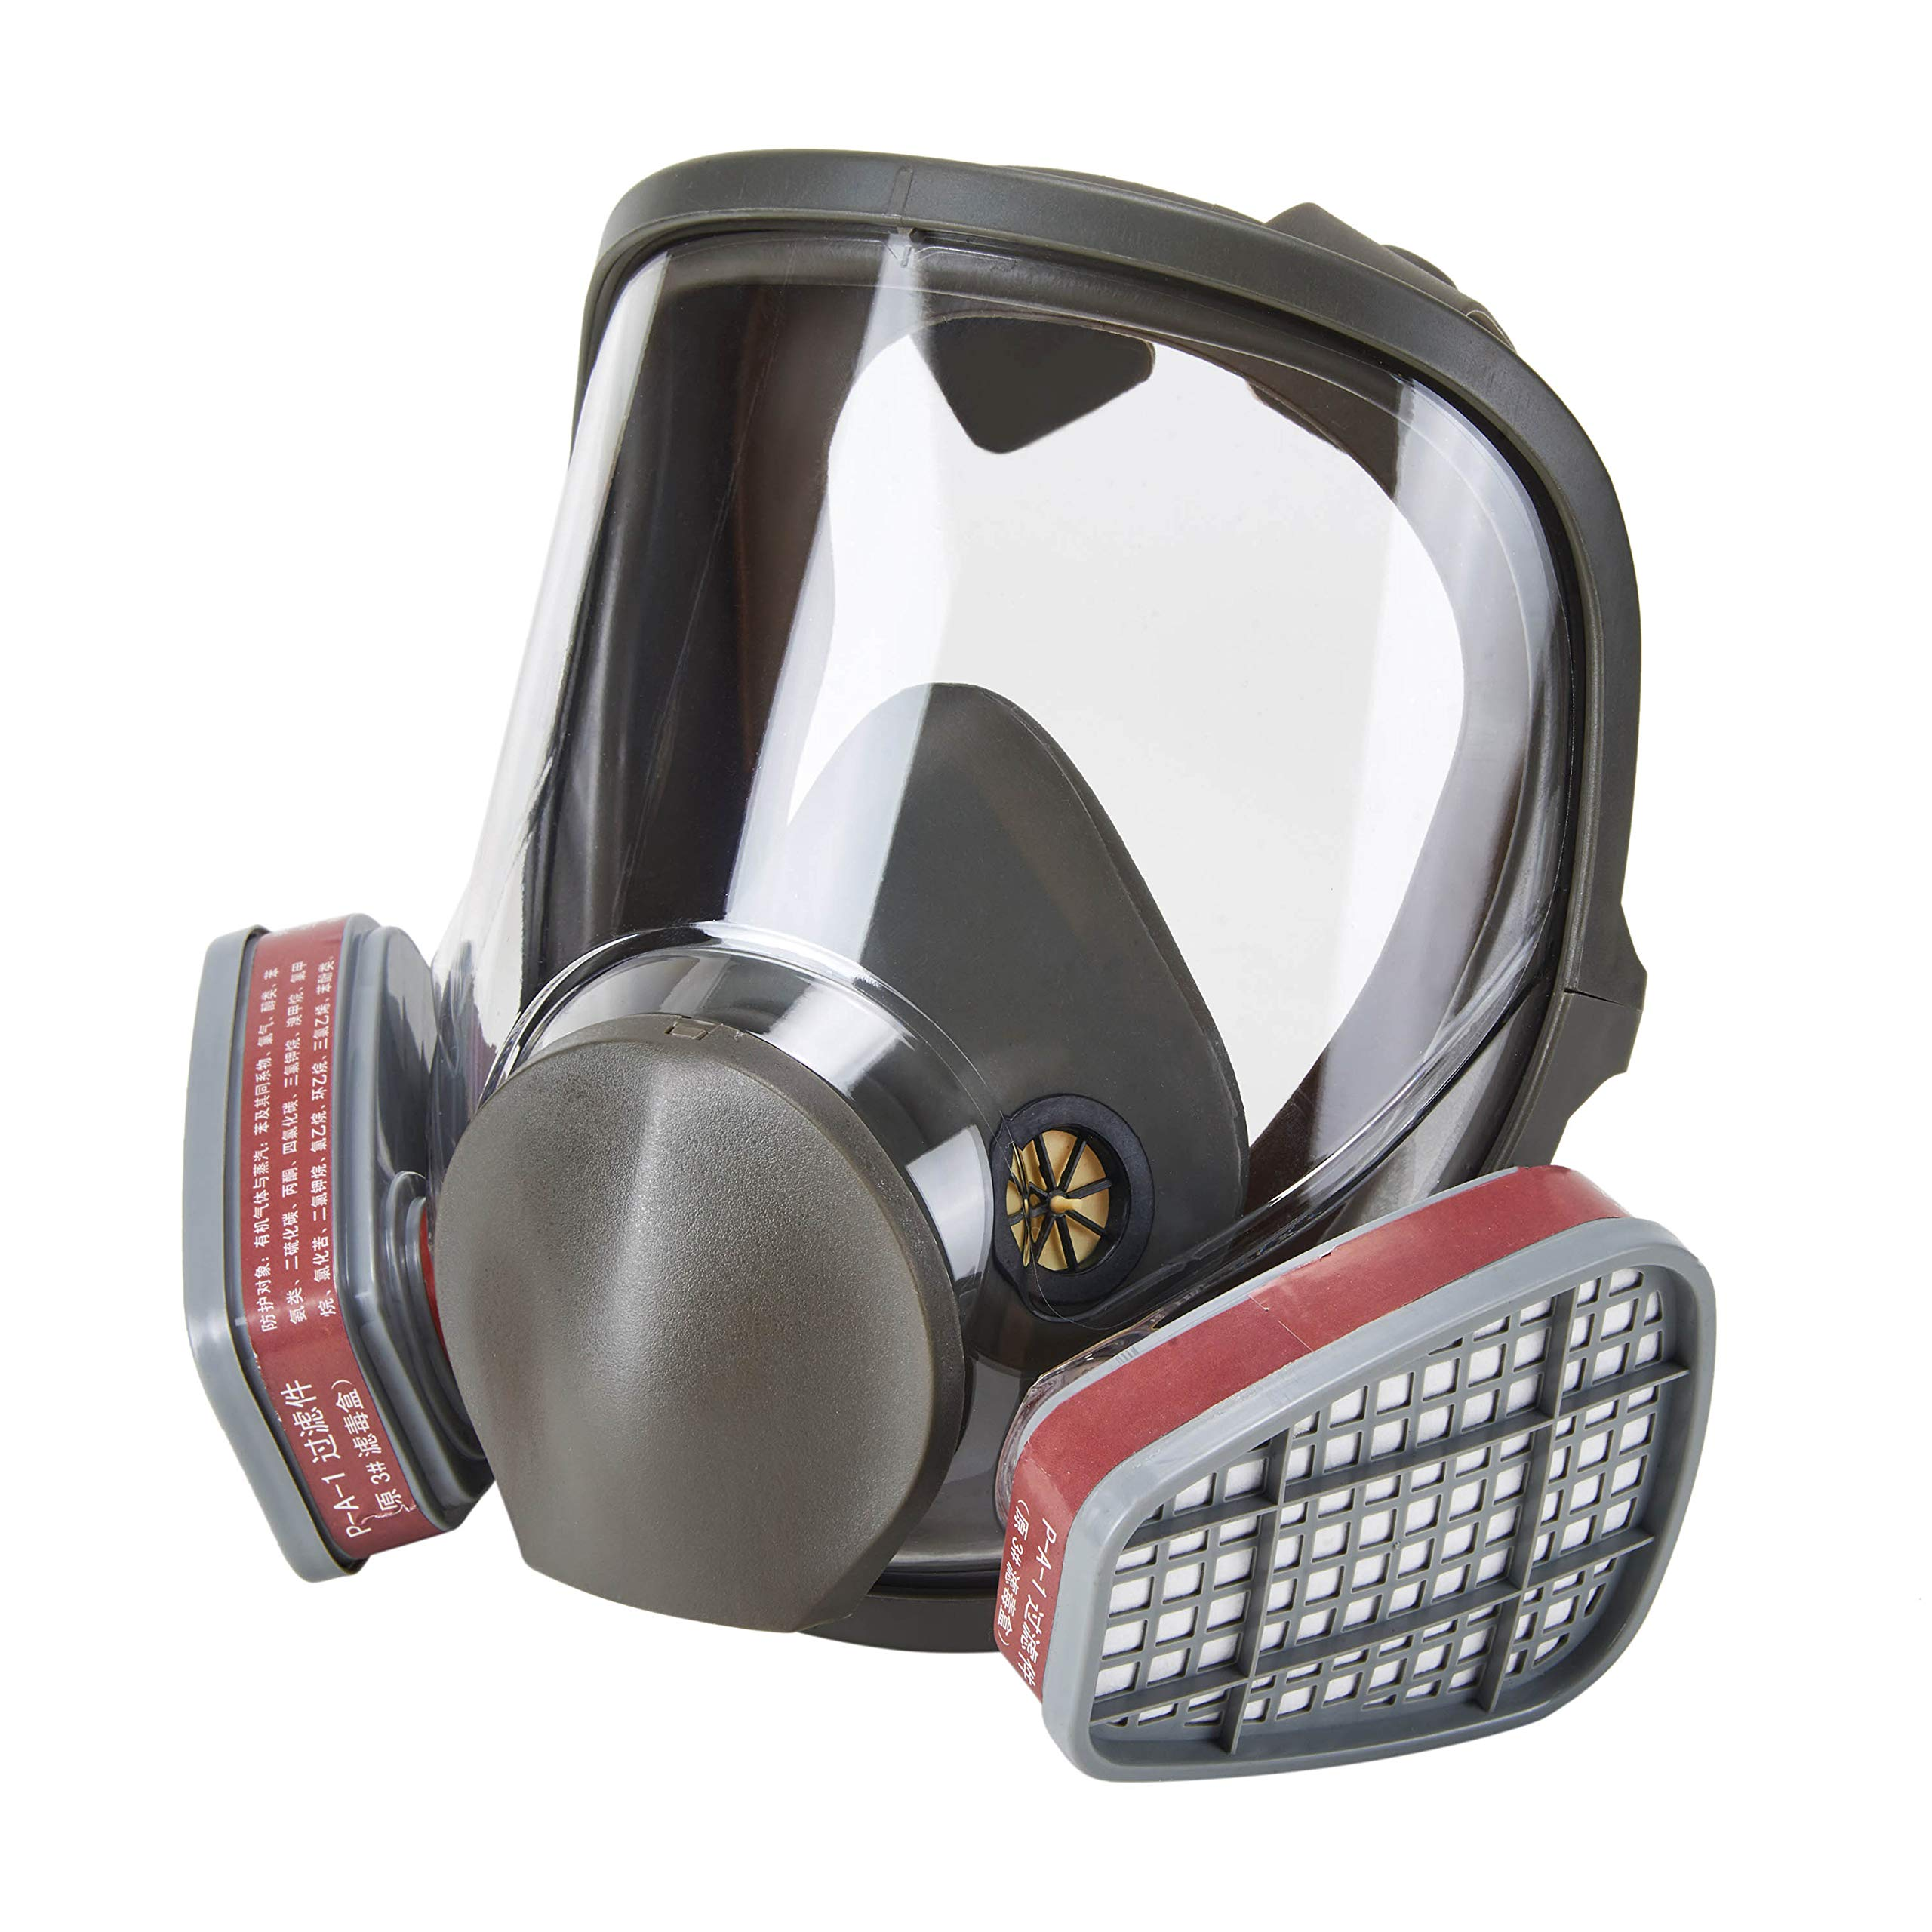 Holulo Full Face Facepiece Respirator Paint Spray Mask with 2 x Organic Vapor Cartridges by Holulo (Image #10)